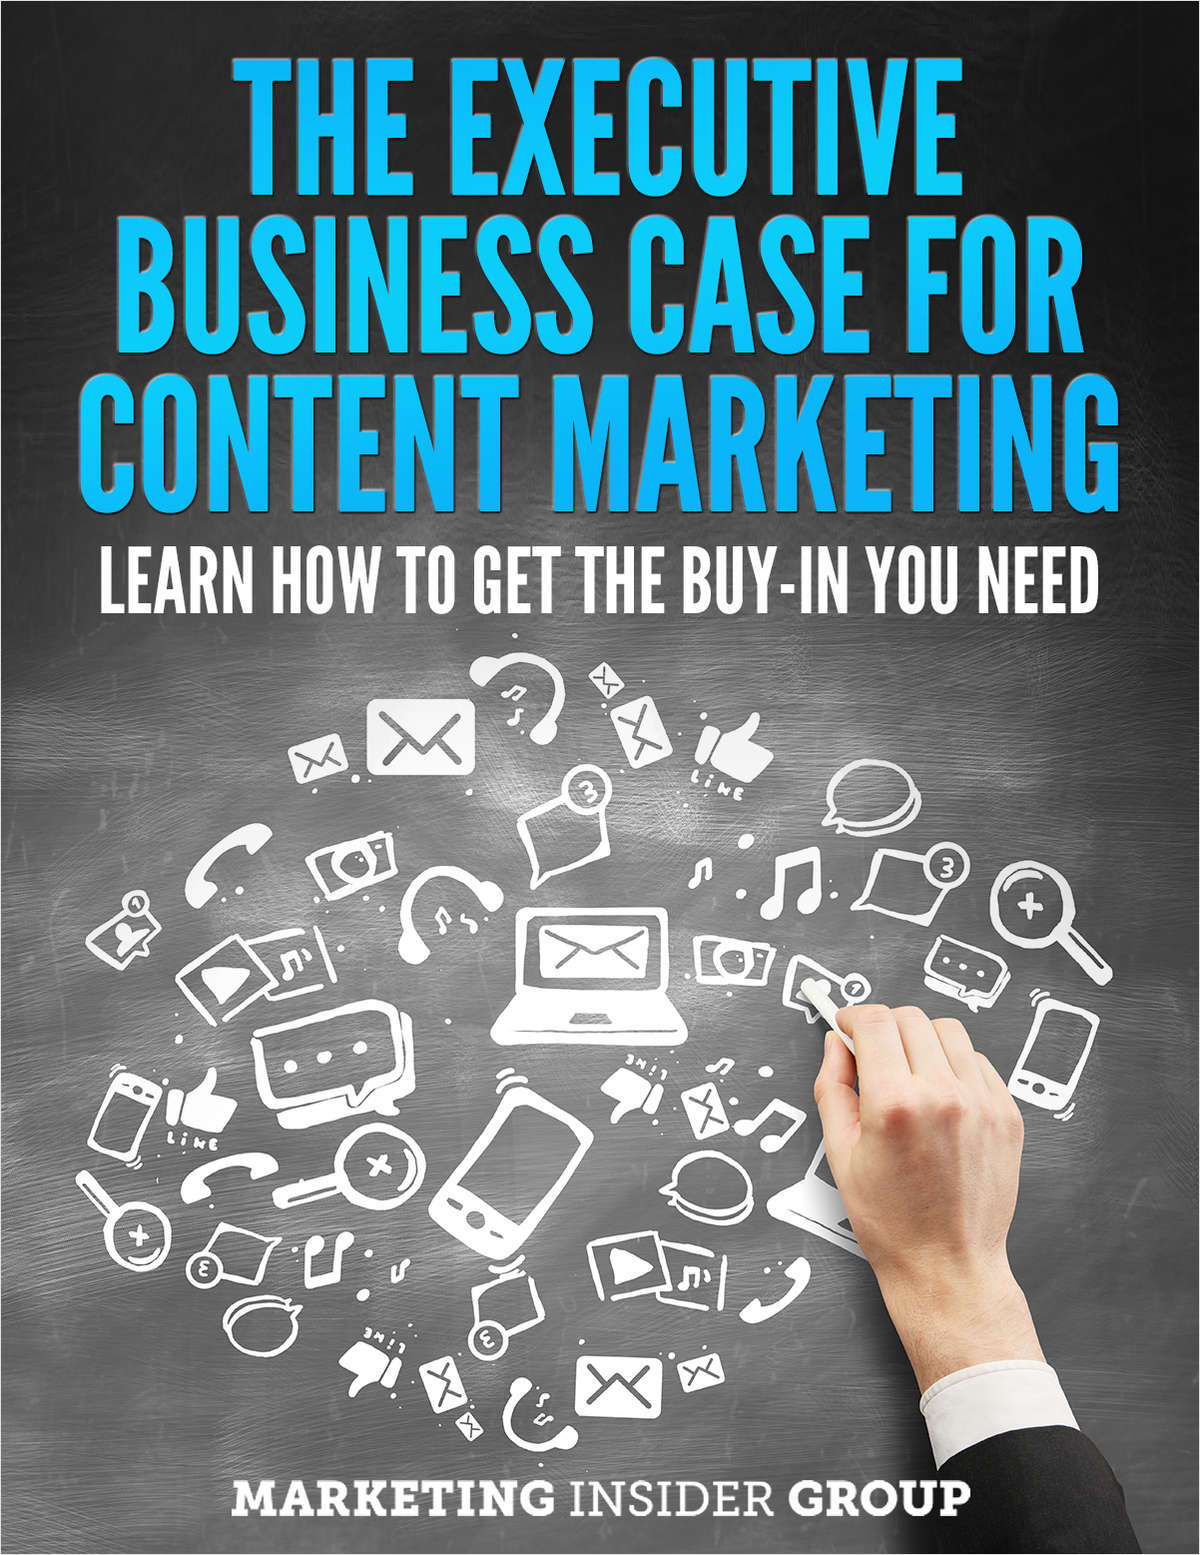 The Executive Business Case for Content Marketing - Learn How to Get the Buy-in You Need